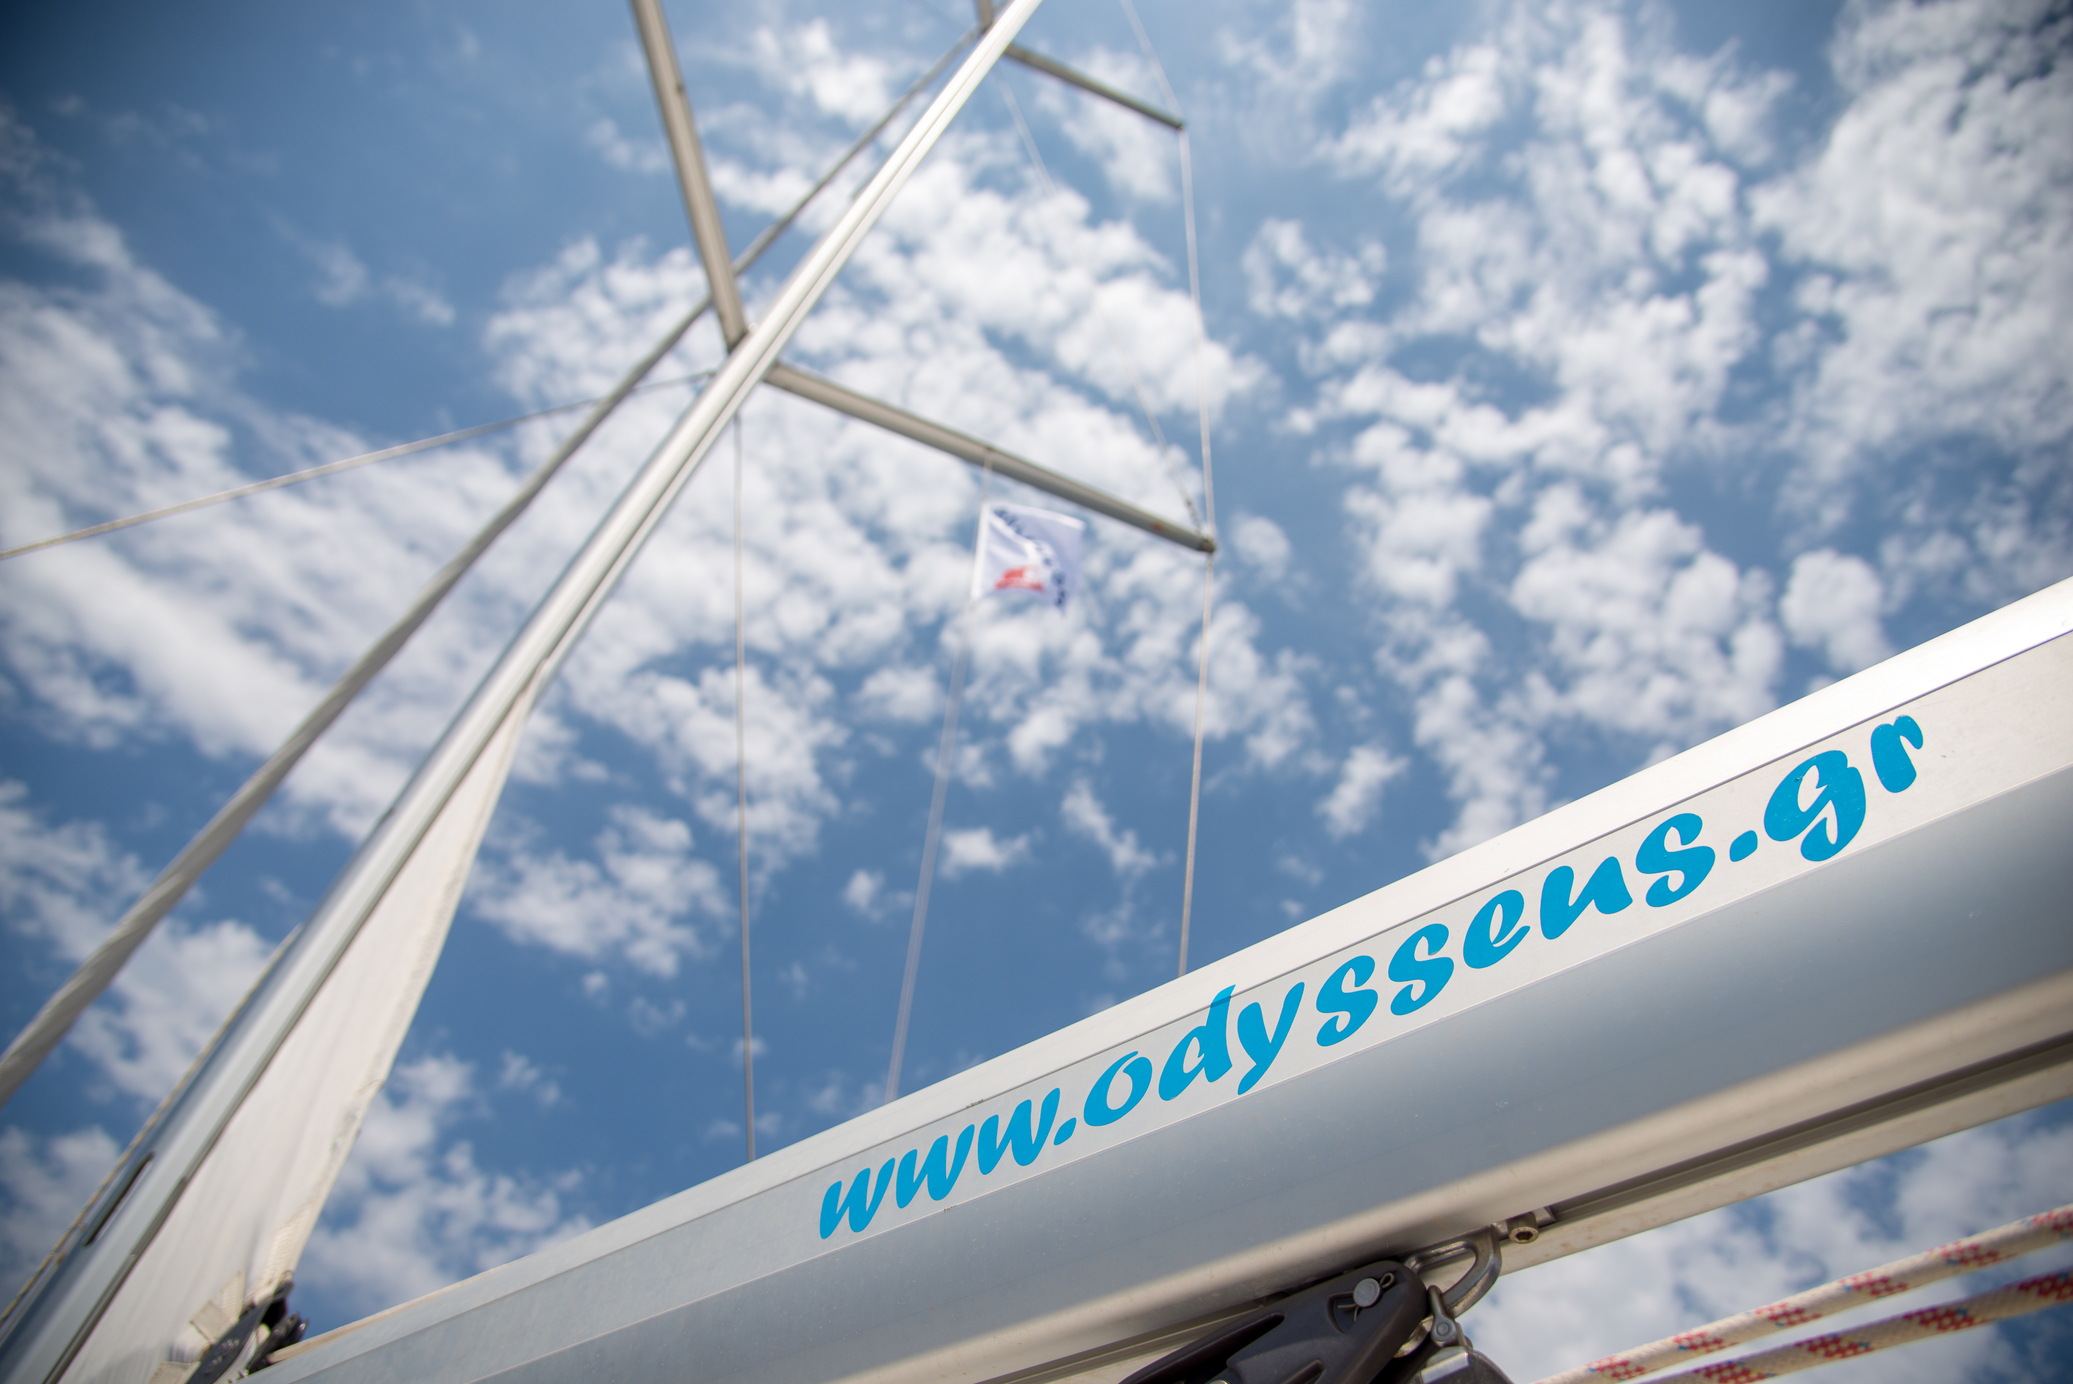 Yachts for sale Sailing in Greece yacht charter Ionian islands Odysseus